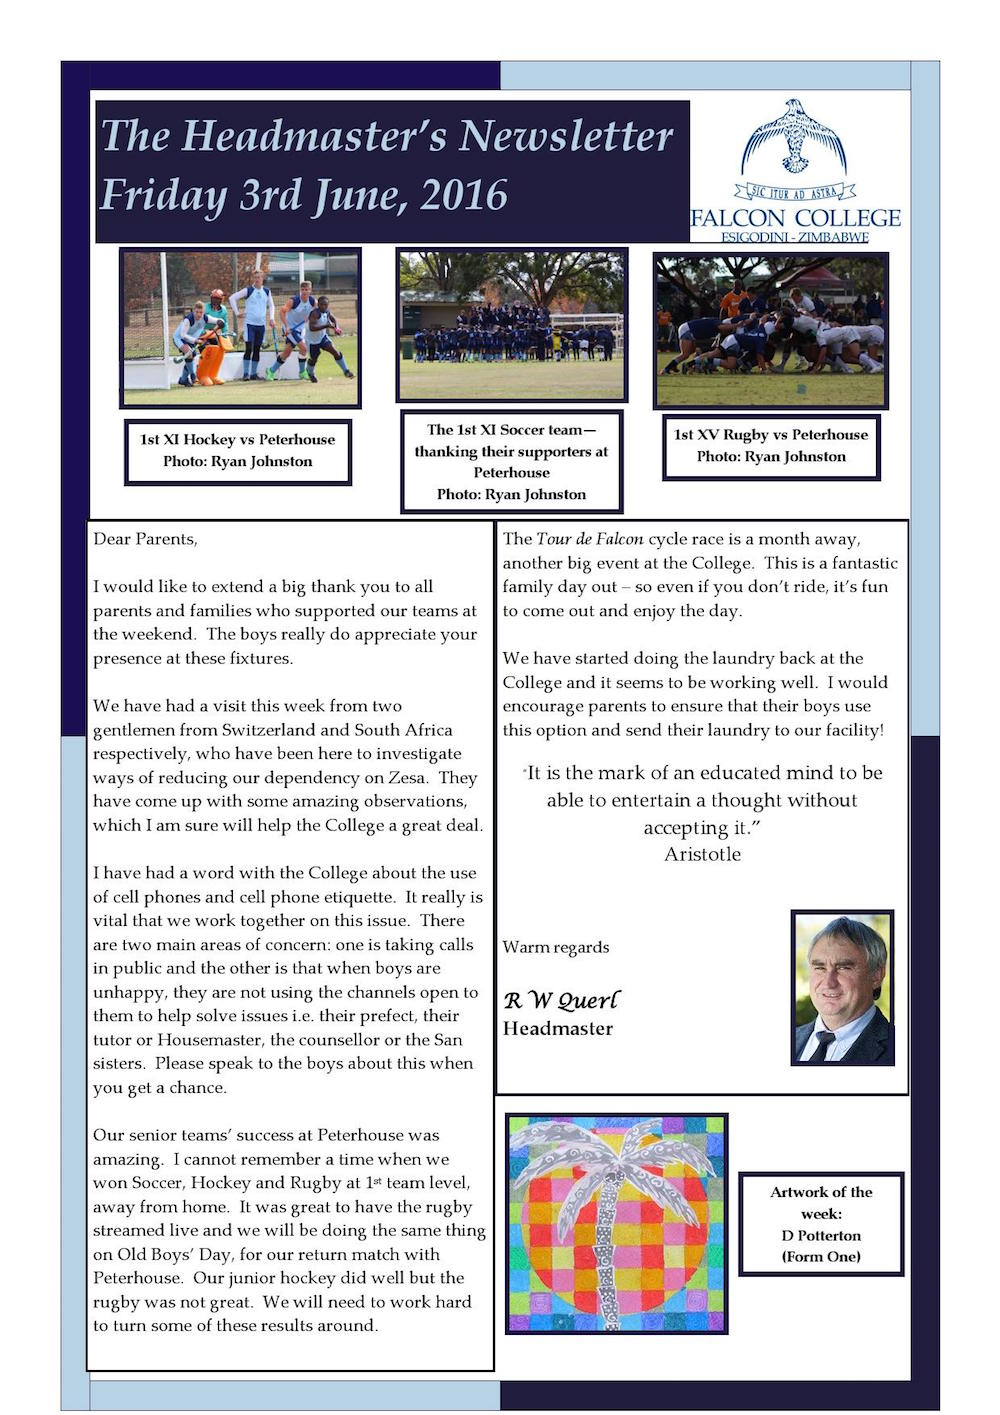 Headmaster's Newsletter Friday 3rd June 2016 edited_000001